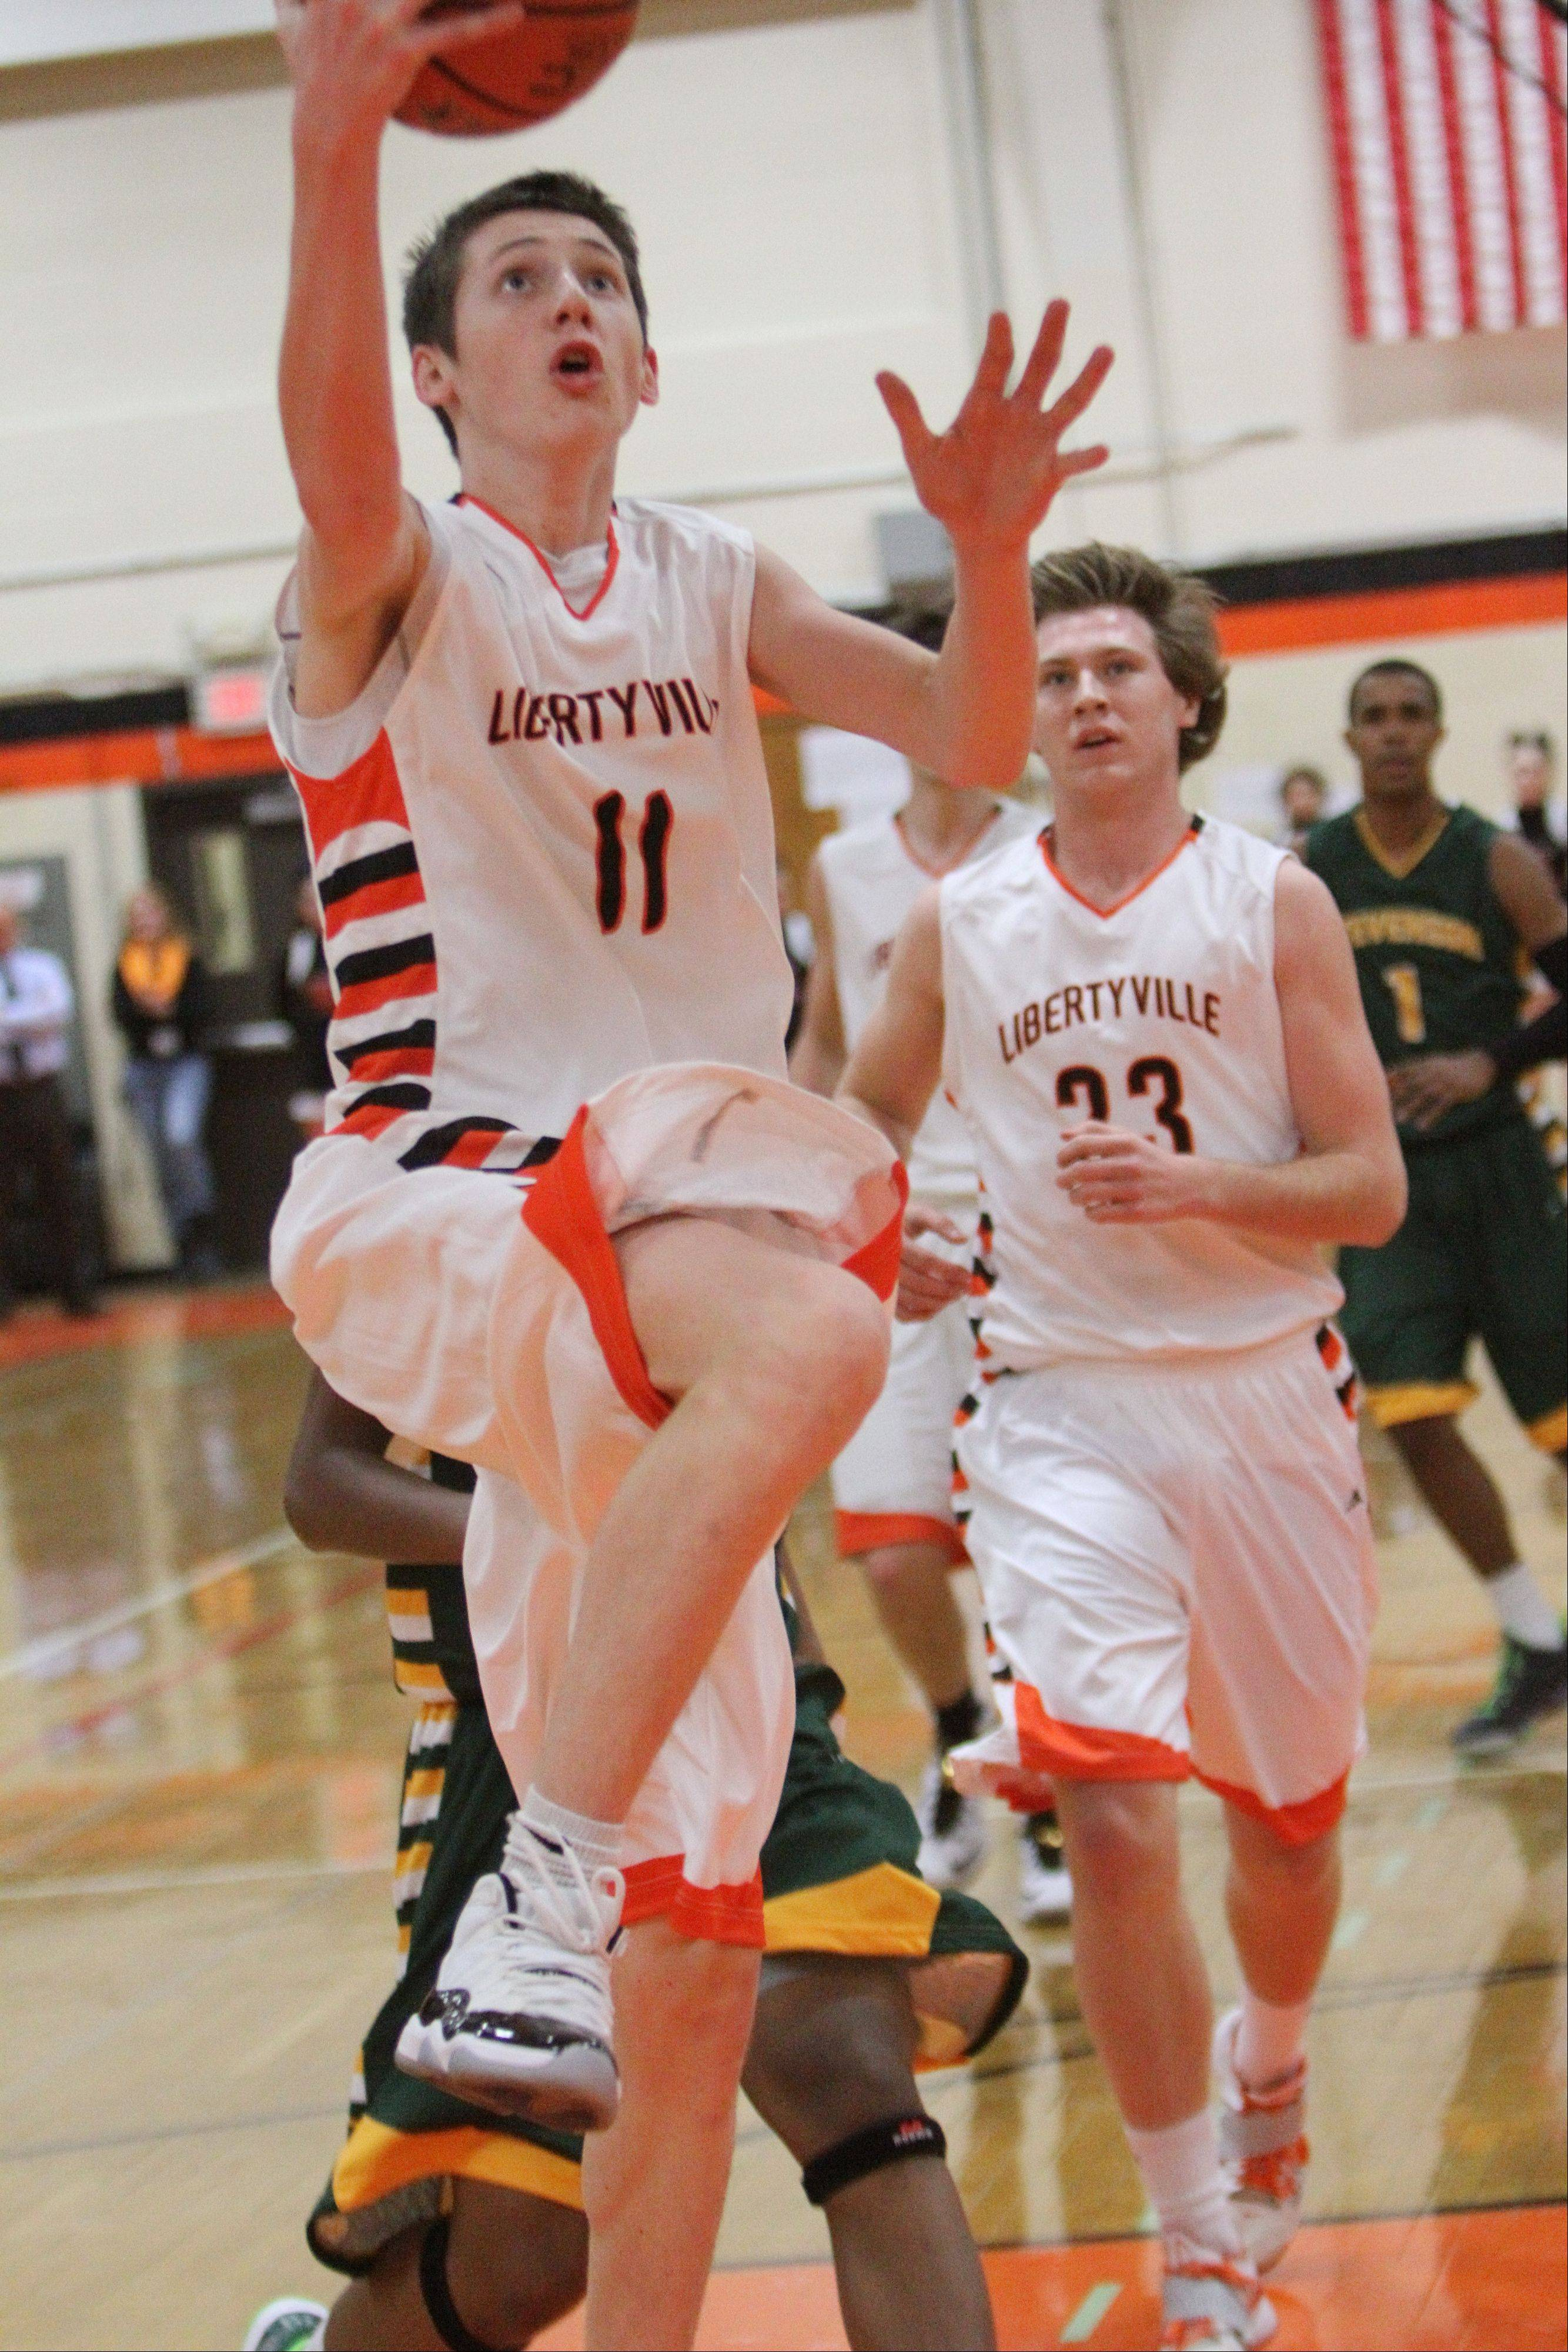 Images from the Libertyville vs. Stevenson boys basketball game on Wednesday, Dec. 11.